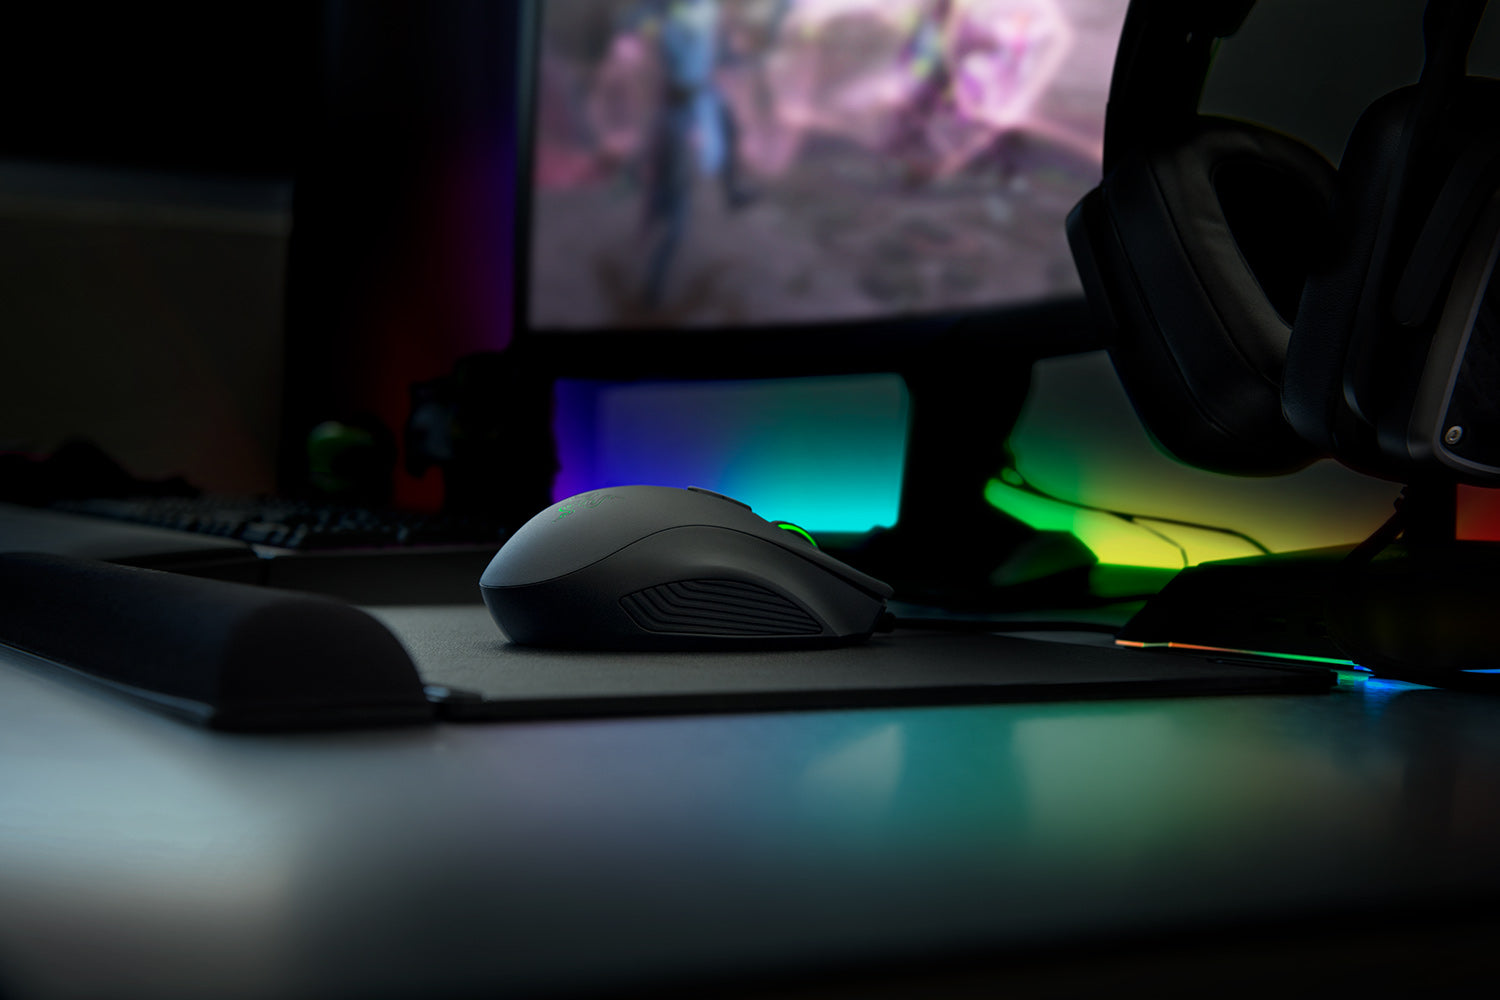 INCREDIBLY DEFT. DEADLY ACCURATE. Equipped with the world's most advanced 5G optical sensor with true 16,000 DPI, the Razer Naga Trinity is optimized for precision and speed, ensuring movements are swift, your spells are on target, and that you get out of the fire when battles turn intense.